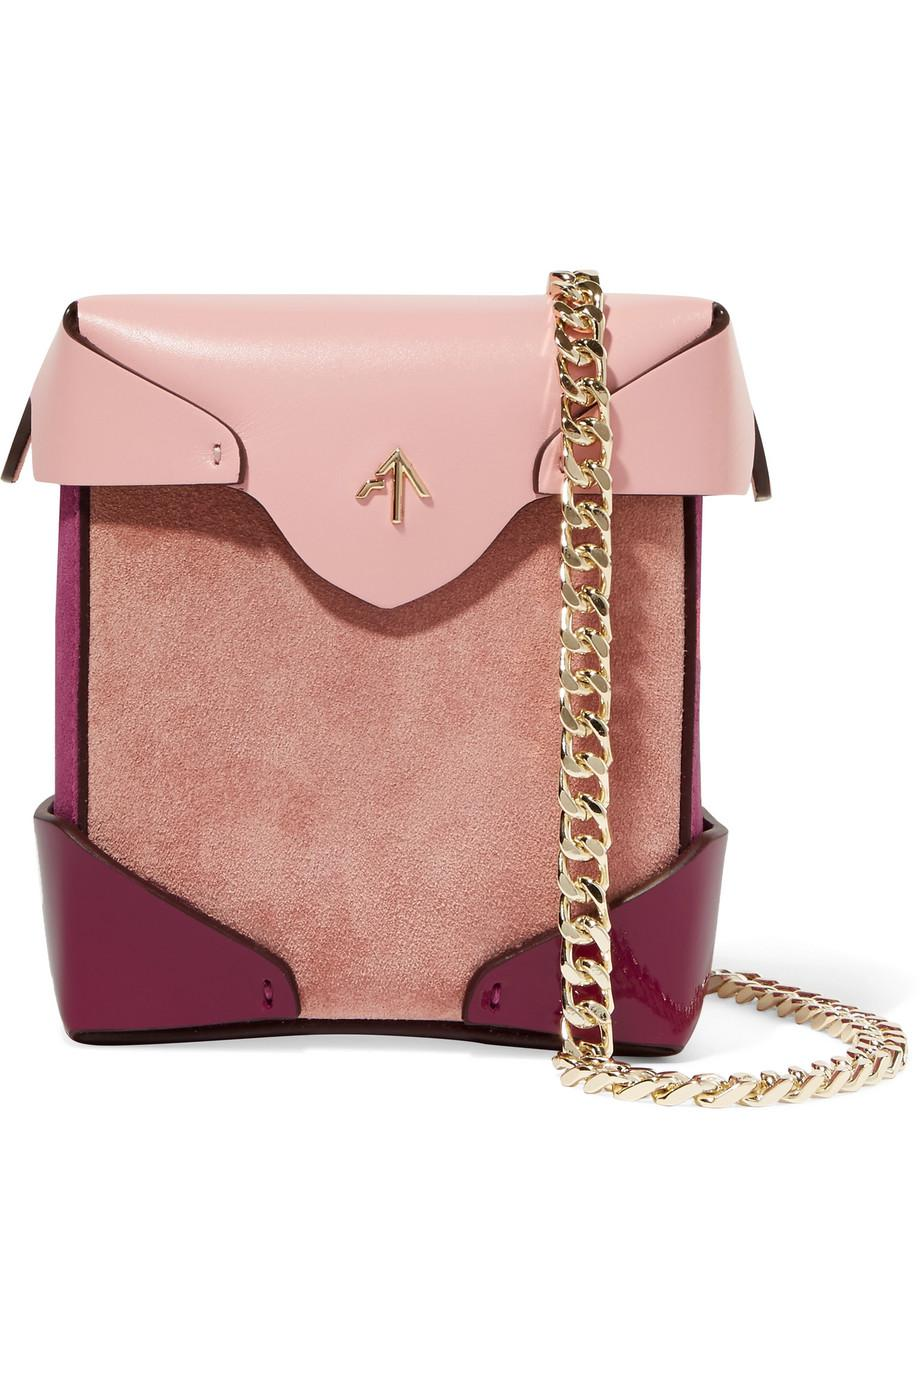 Cheap Lowest Price Bold Color-block Leather And Suede Shoulder Bag - White Manu Atelier Cost Cheap Price CZNov